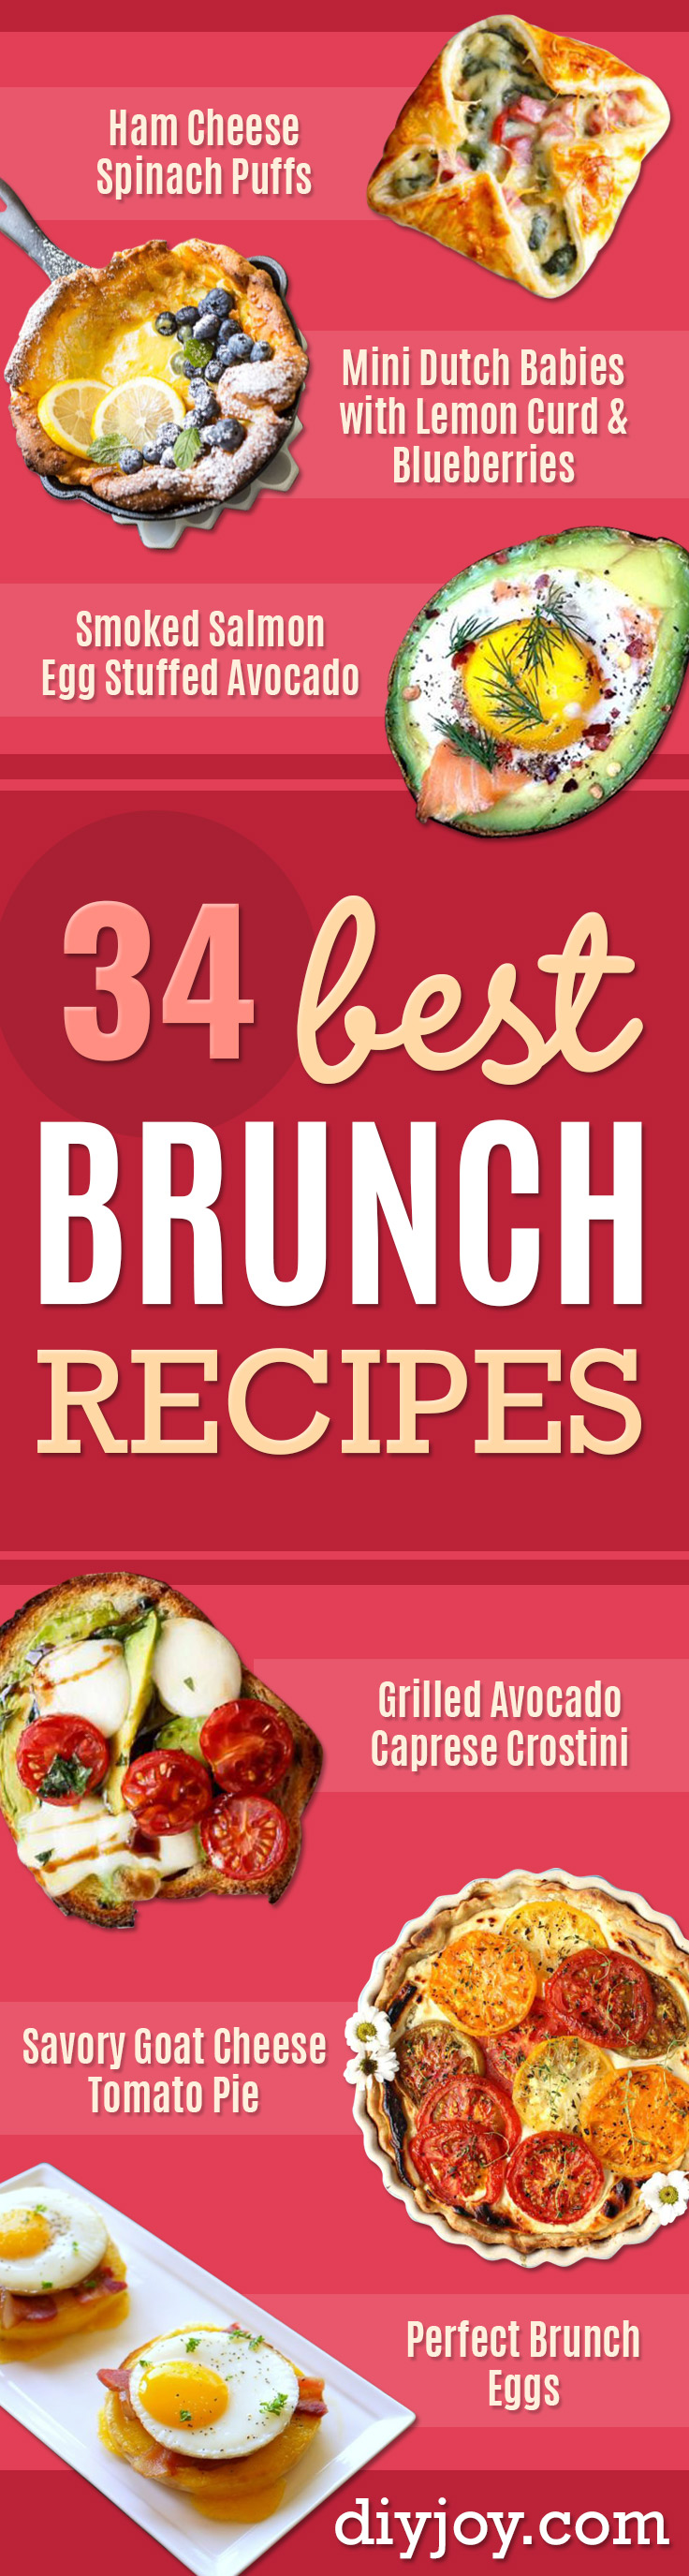 Best Brunch Recipes - Eggs, Pancakes, Waffles, Casseroles, Vegetable Dishes and Side, Potato Recipe Ideas for Brunches - Serve A Crowd and Family with the versions of Eggs Benedict, Mimosas, Muffins and Pastries, Desserts - Make Ahead , Slow Cooler and Healthy Casserole Recipes #breakfast #brunch #recipesipes